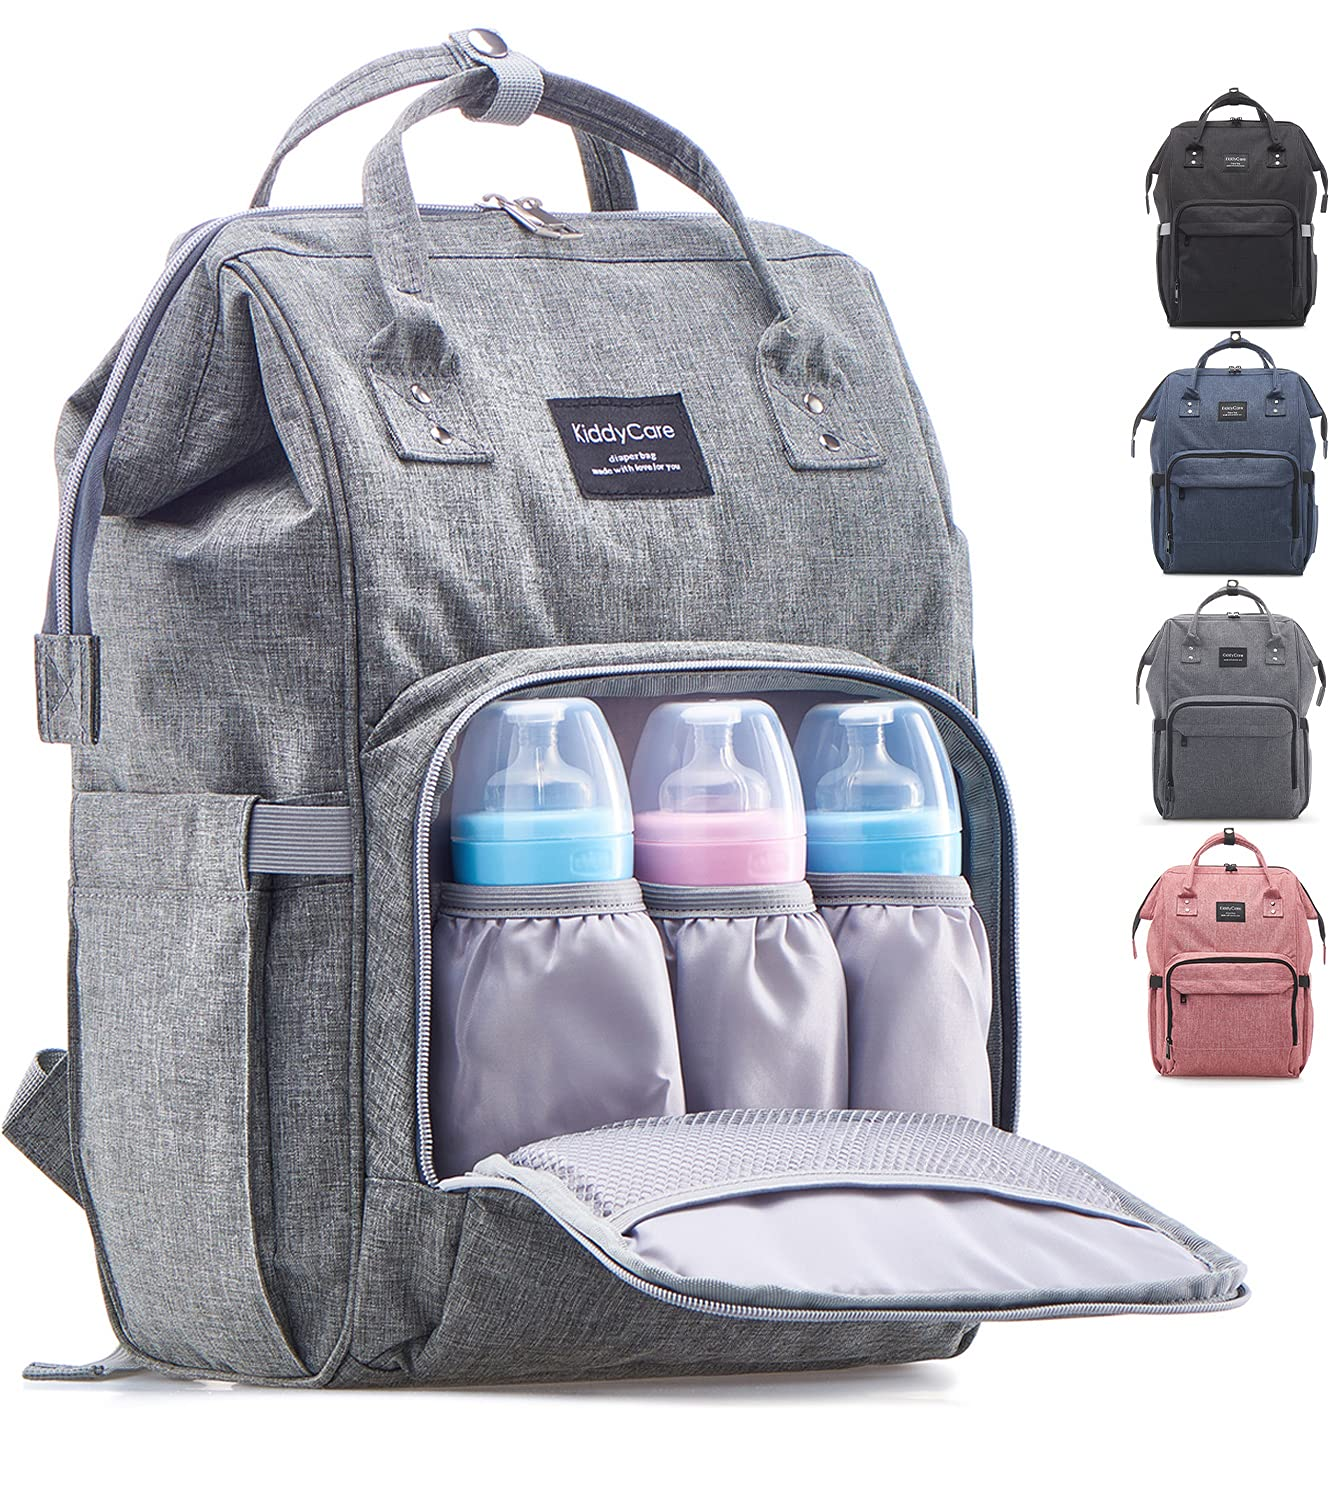 KiddyCare Diaper Bag Backpack – Multi-Function Baby Bag, Maternity Nappy Bags for Travel, Large Capacity, Waterproof, Durable & Stylish for Woman and Men, Gray